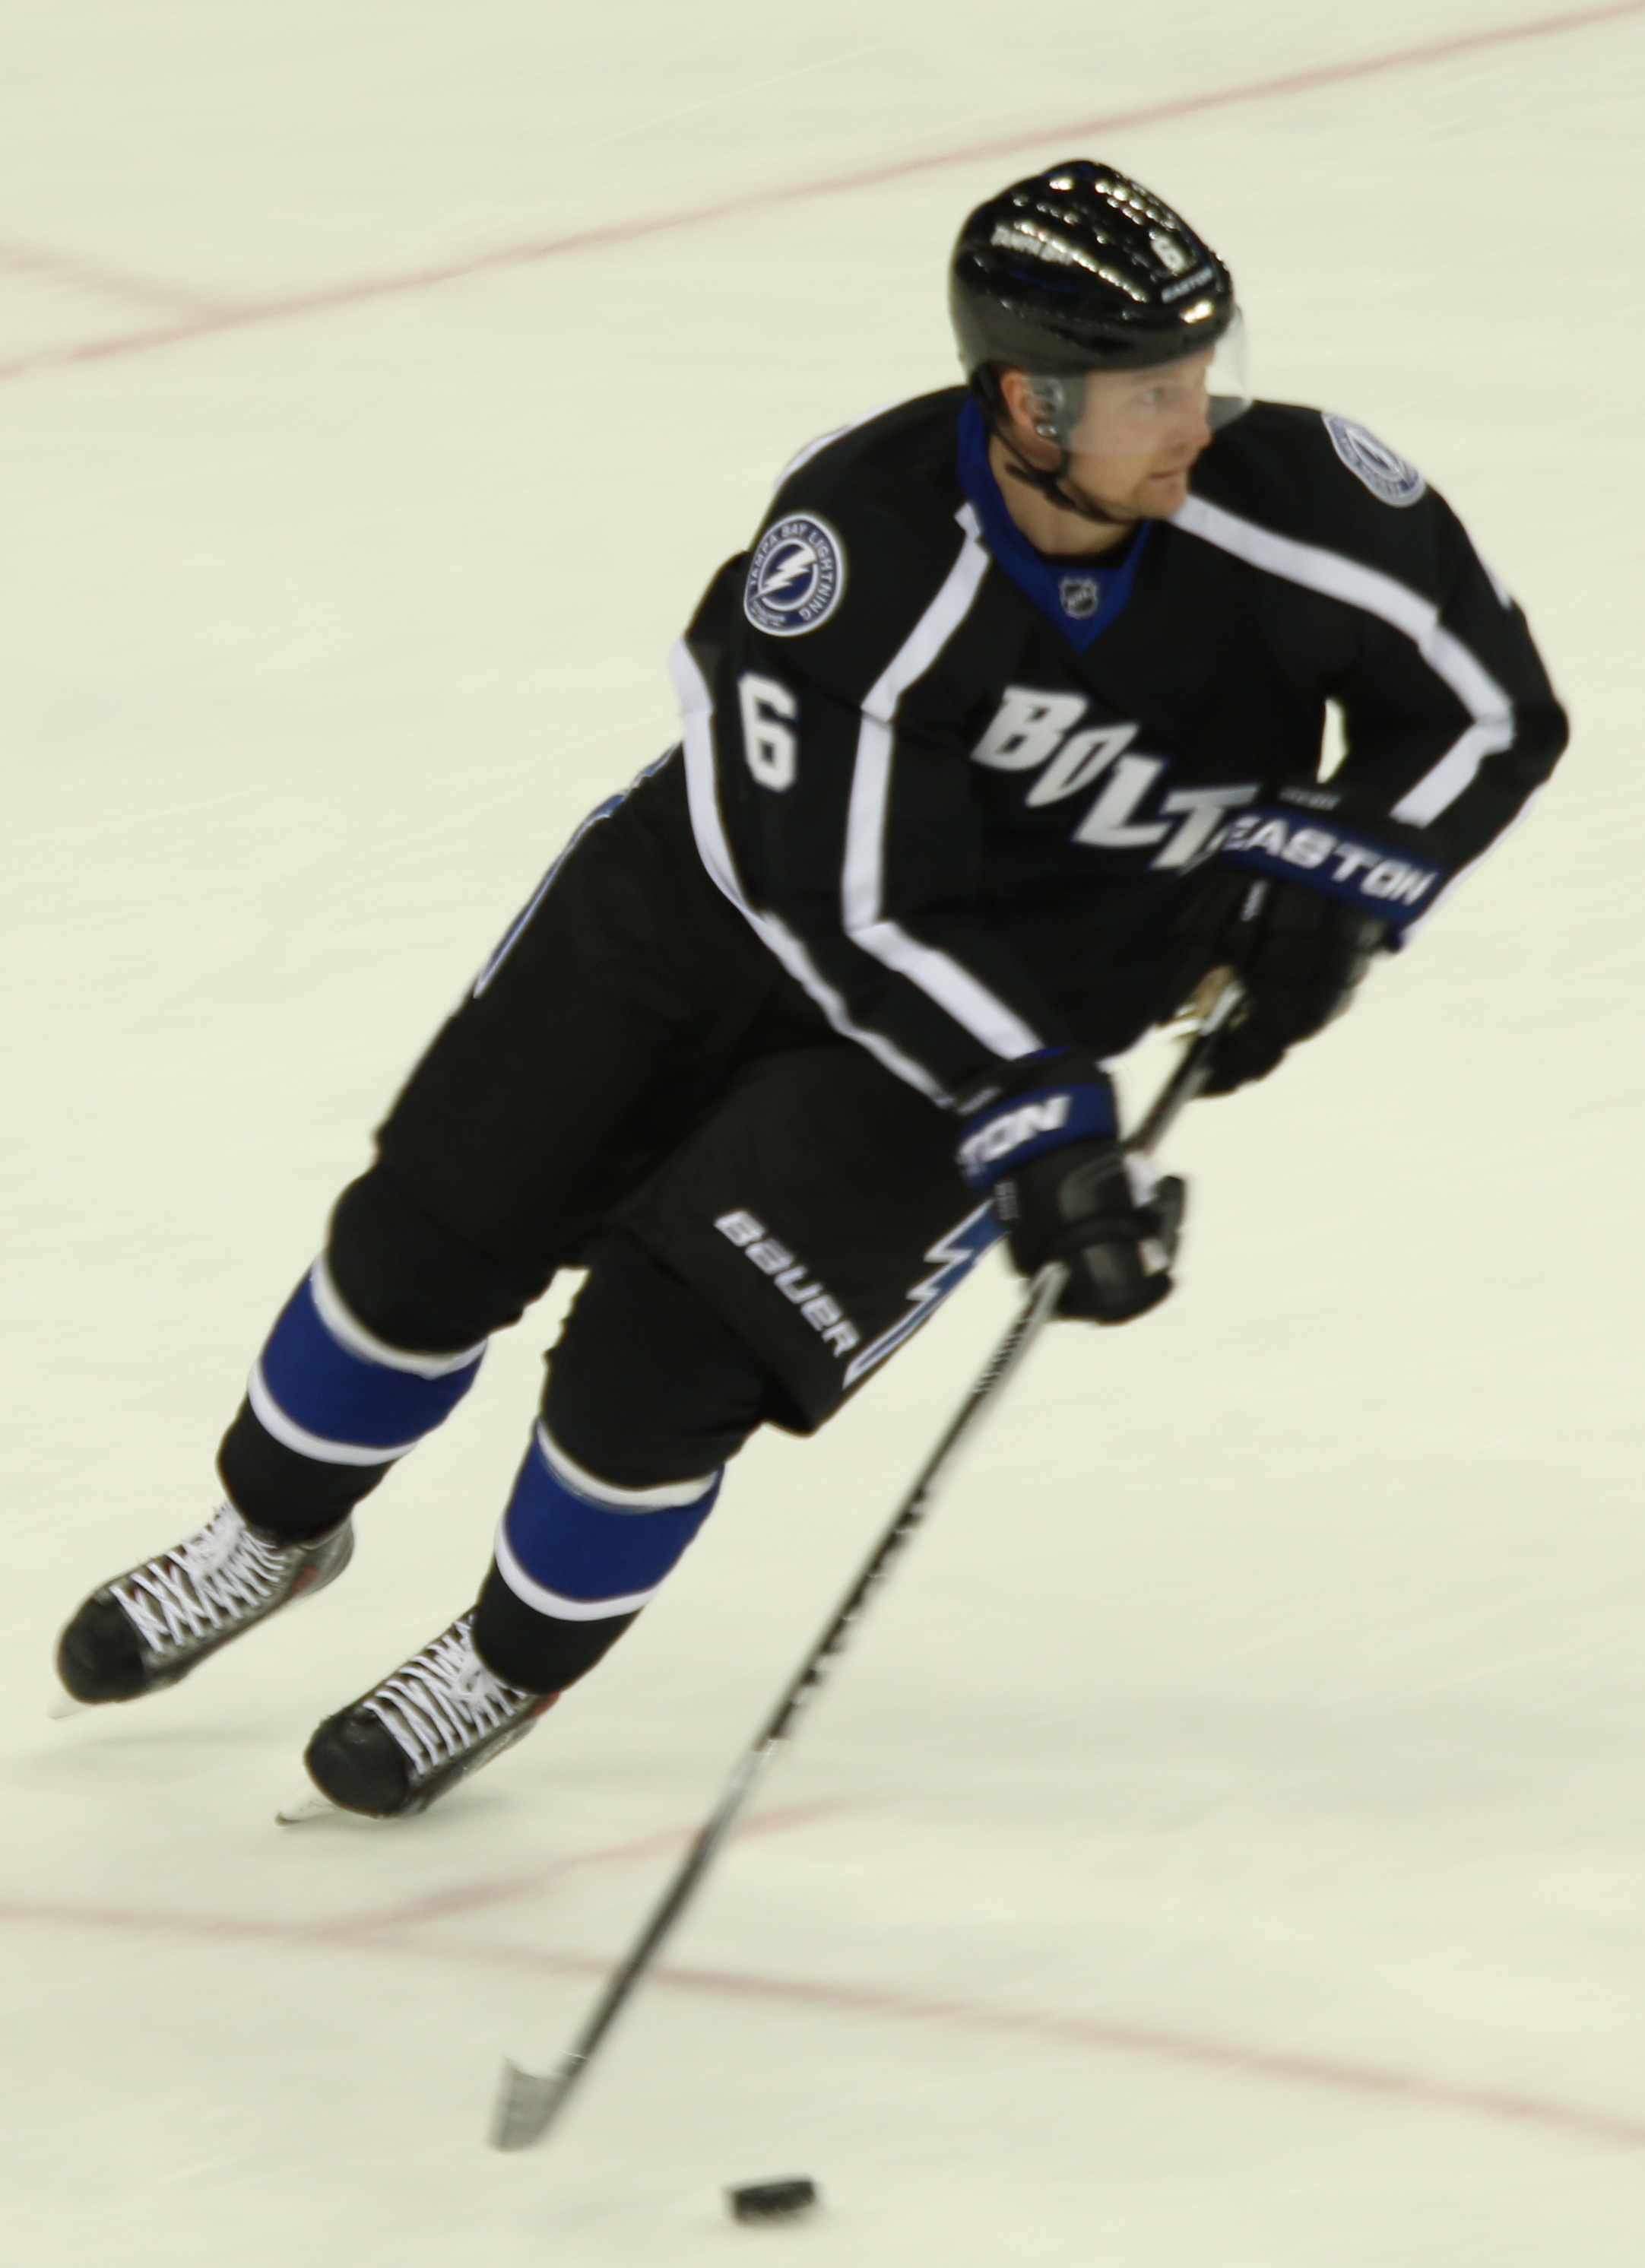 ...but will he be missed more than Stralman.